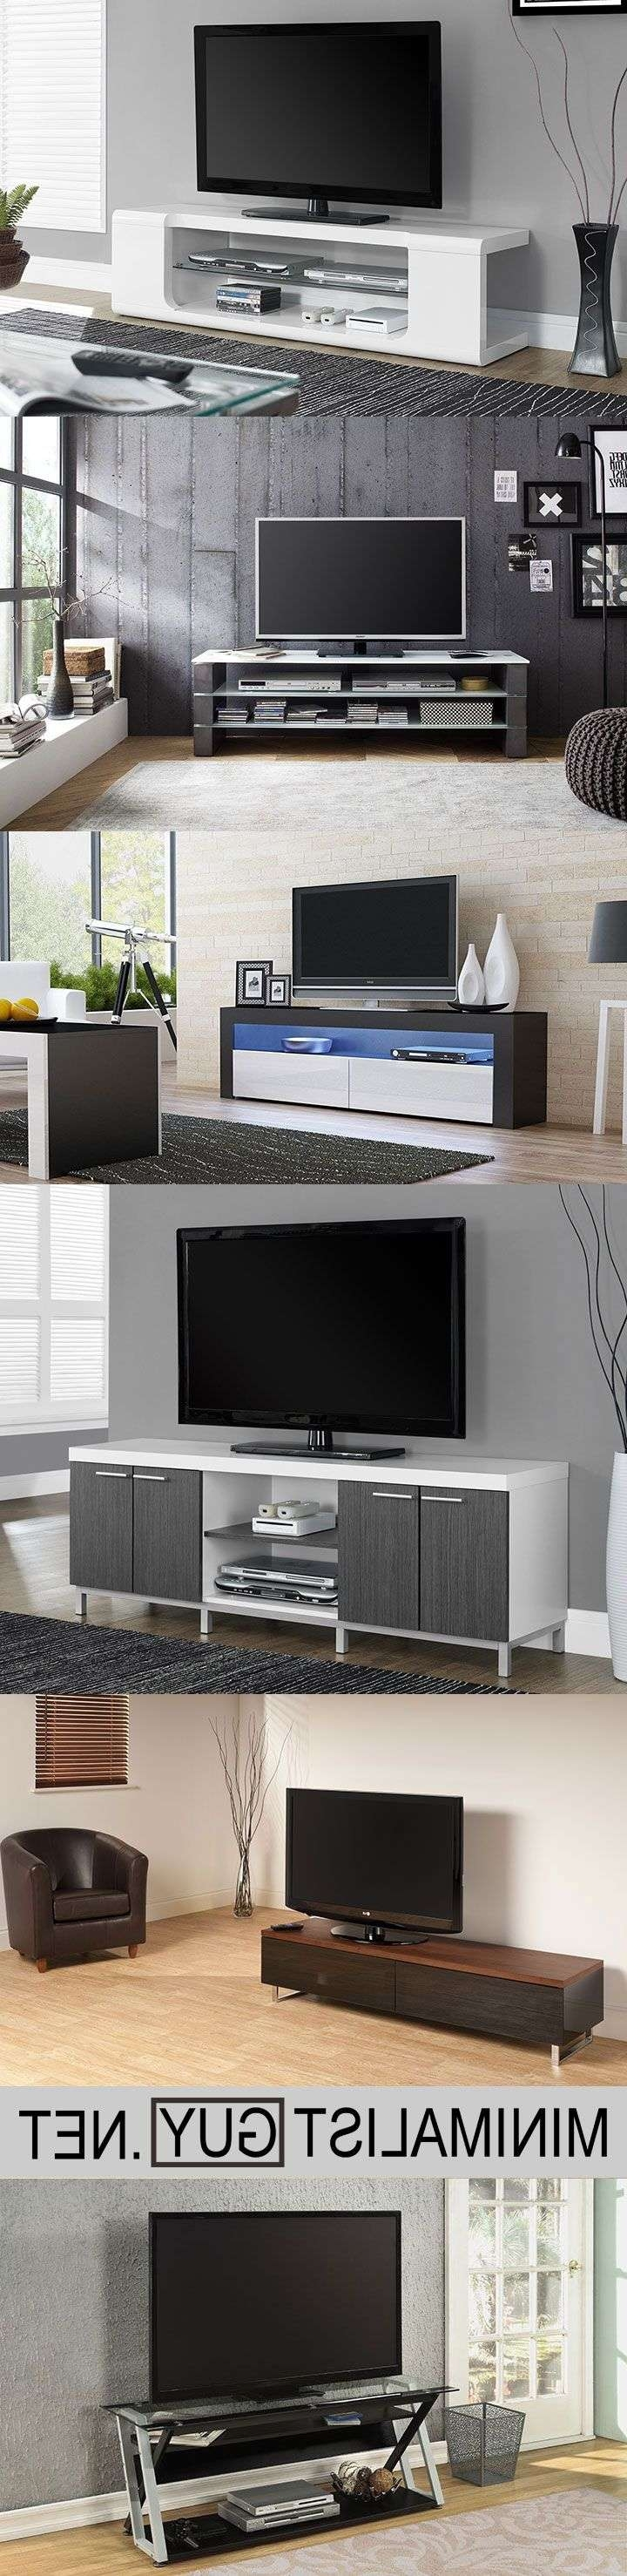 Tv : Upright Tv Stands Awful Tall Upright Tv Stands' Ravishing With Upright Tv Stands (View 10 of 15)